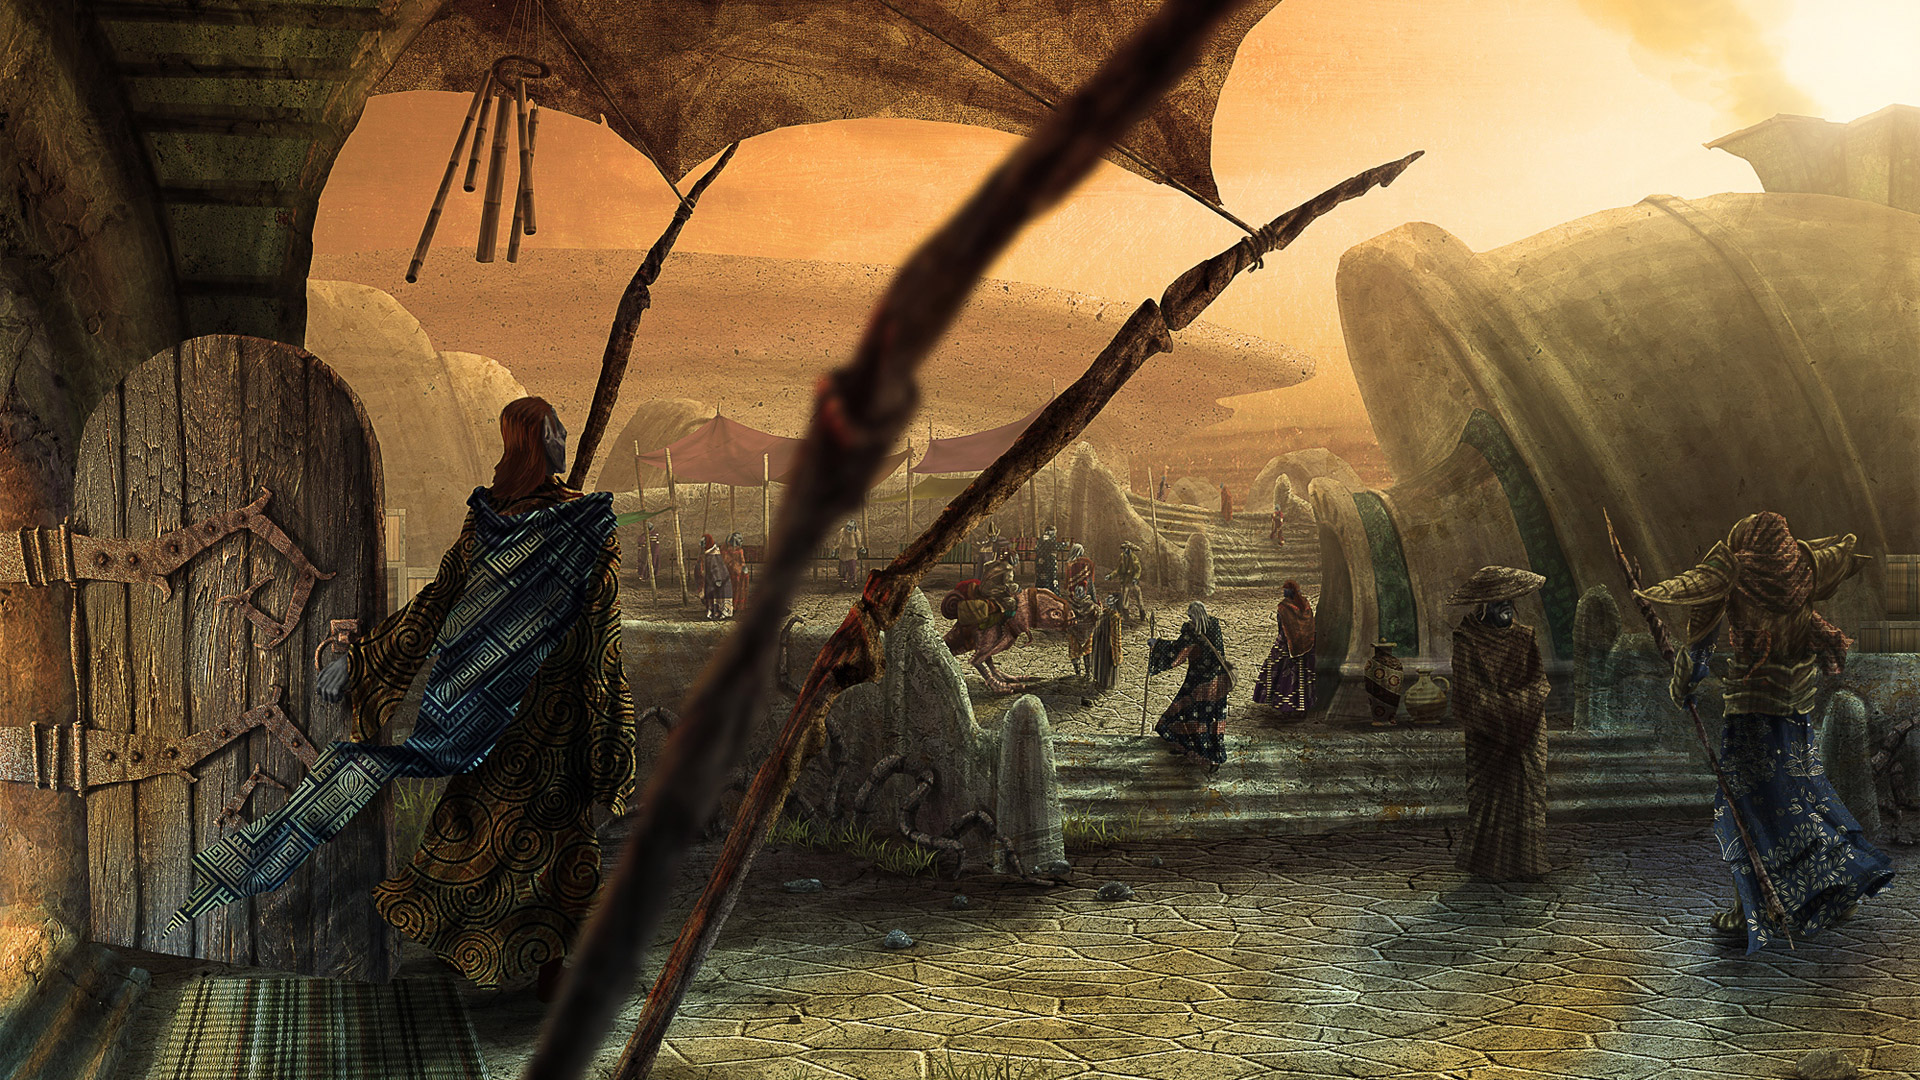 Free The Elder Scrolls III: Morrowind Wallpaper in 1920x1080